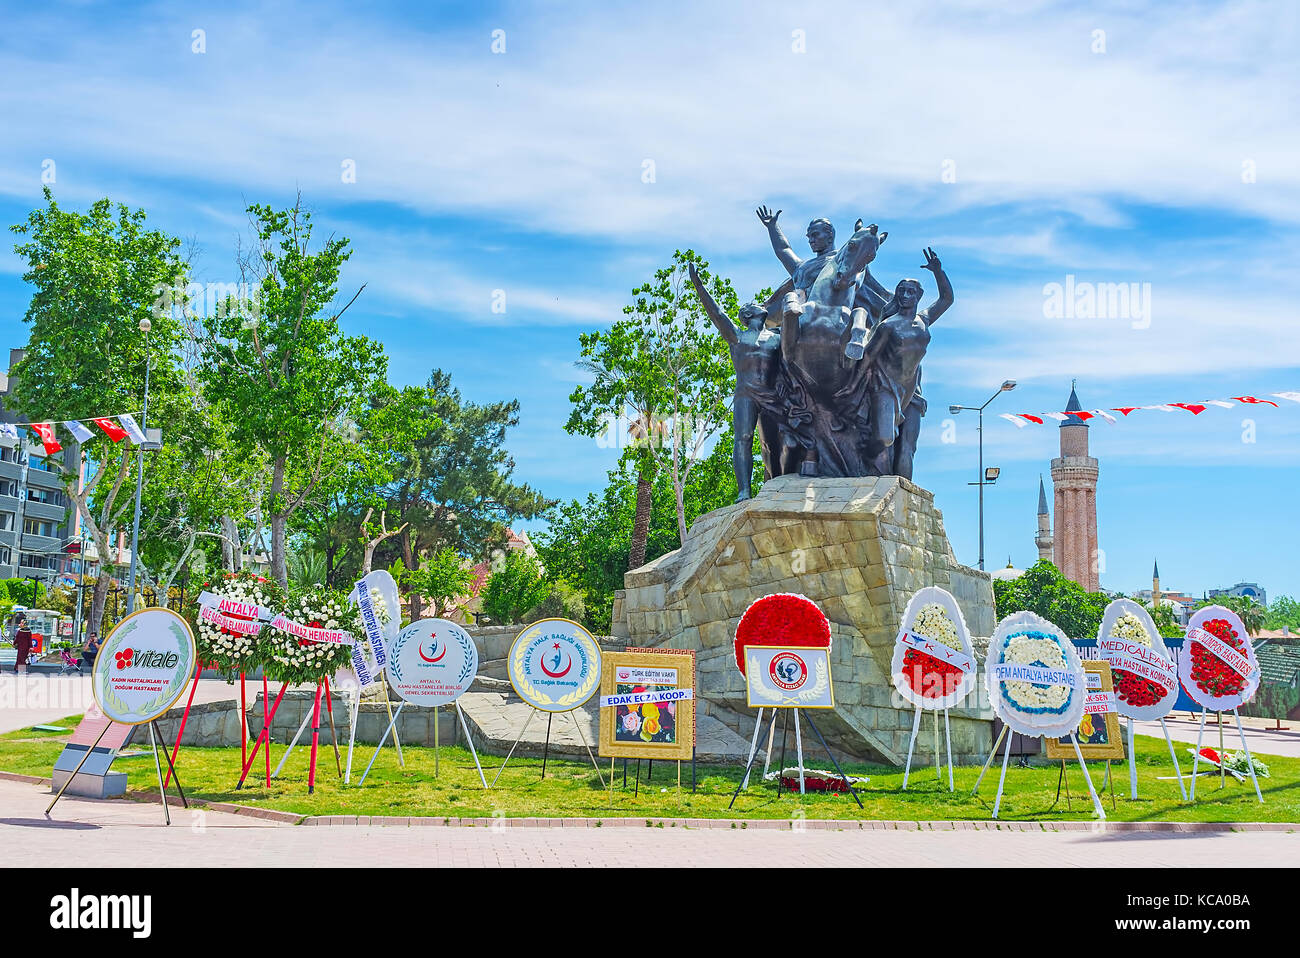 ANTALYA, TURKEY - MAY 12, 2017: The Ataturk monument in Republic Square is decorated with wreathes and info boards - Stock Image